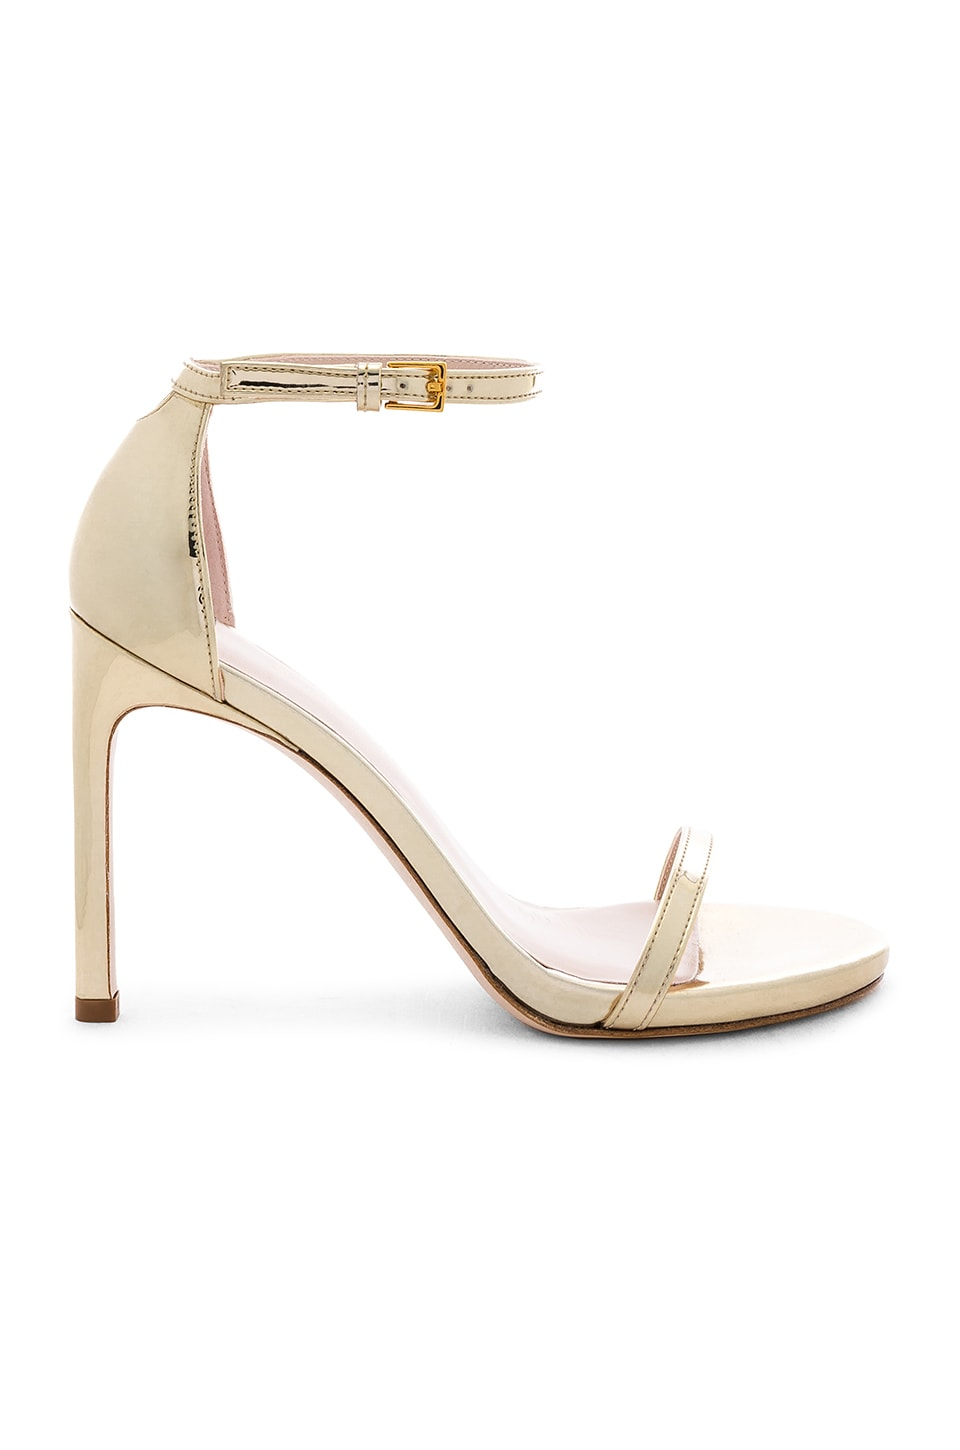 Stuart Weitzman Nudist Heel in Pale Gold Specchio